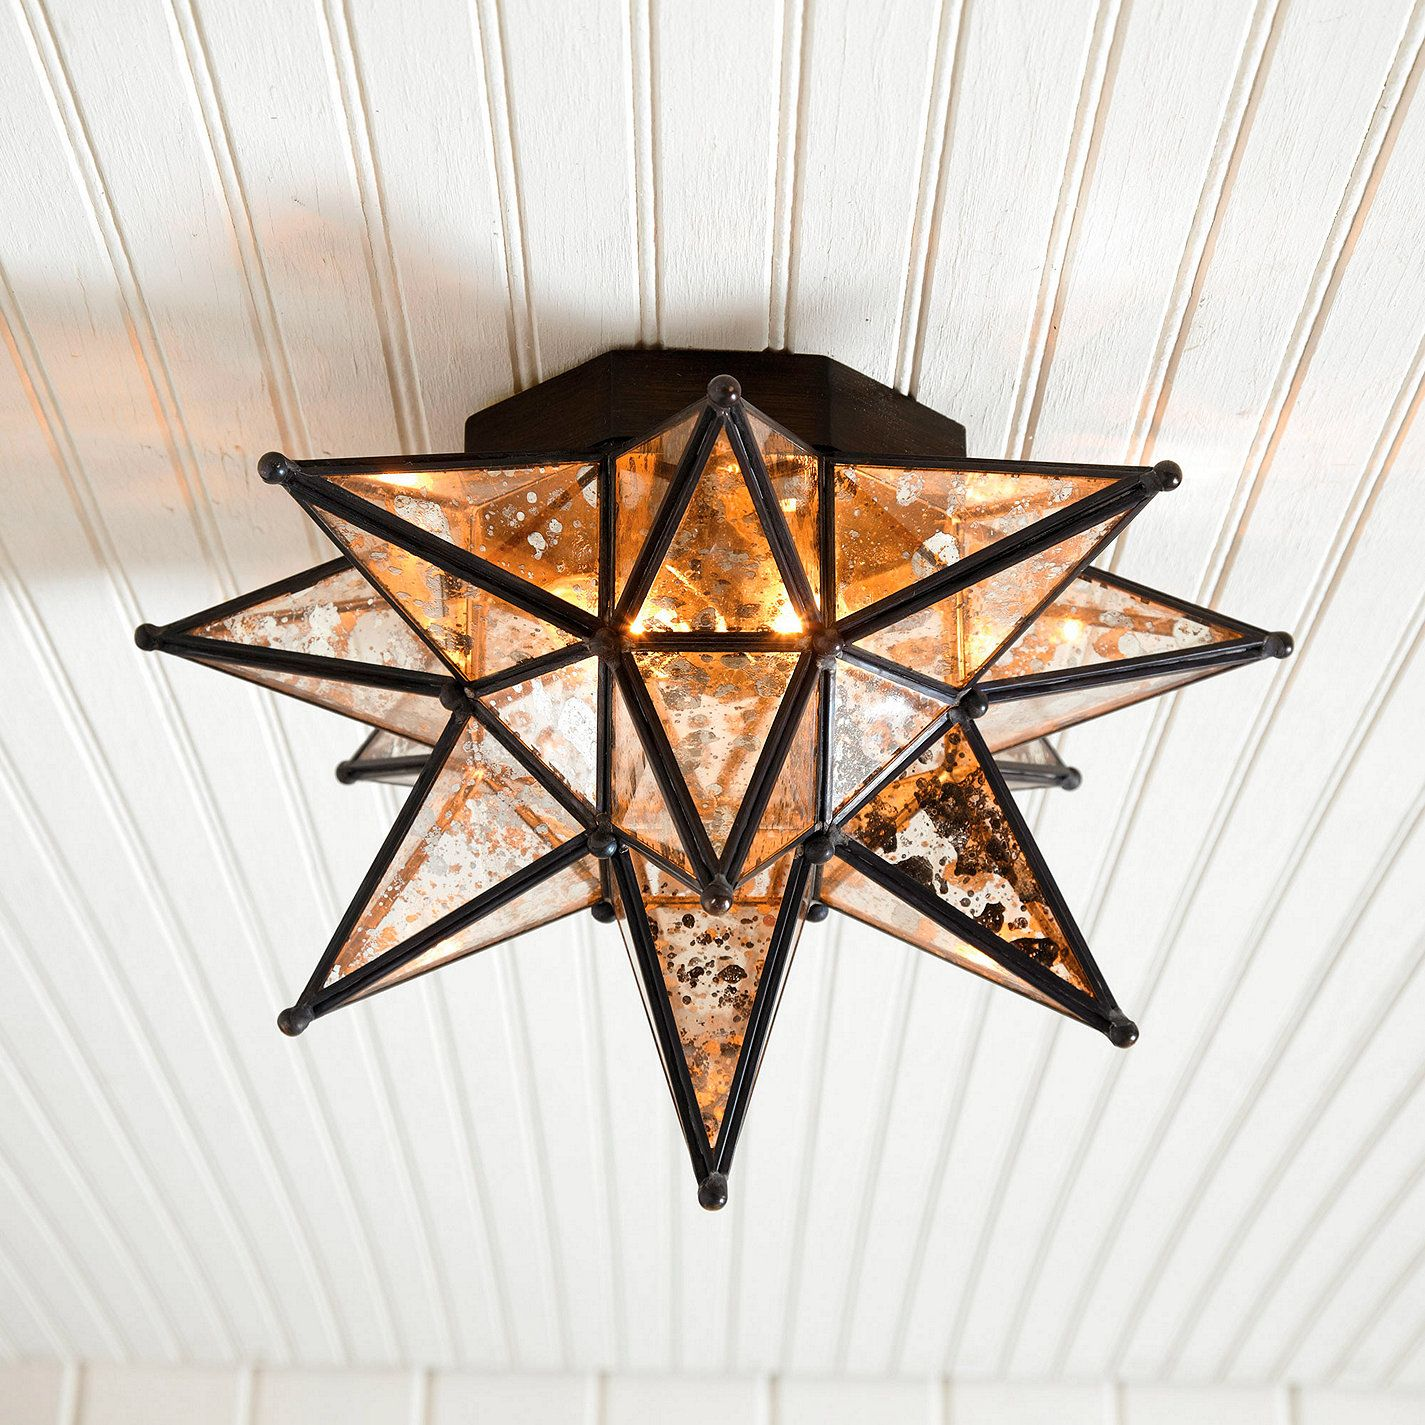 lighting pendant stylish with indo or for indoor variety star of marvelous lightings styles light design depot home kitchen outdoor moravian a